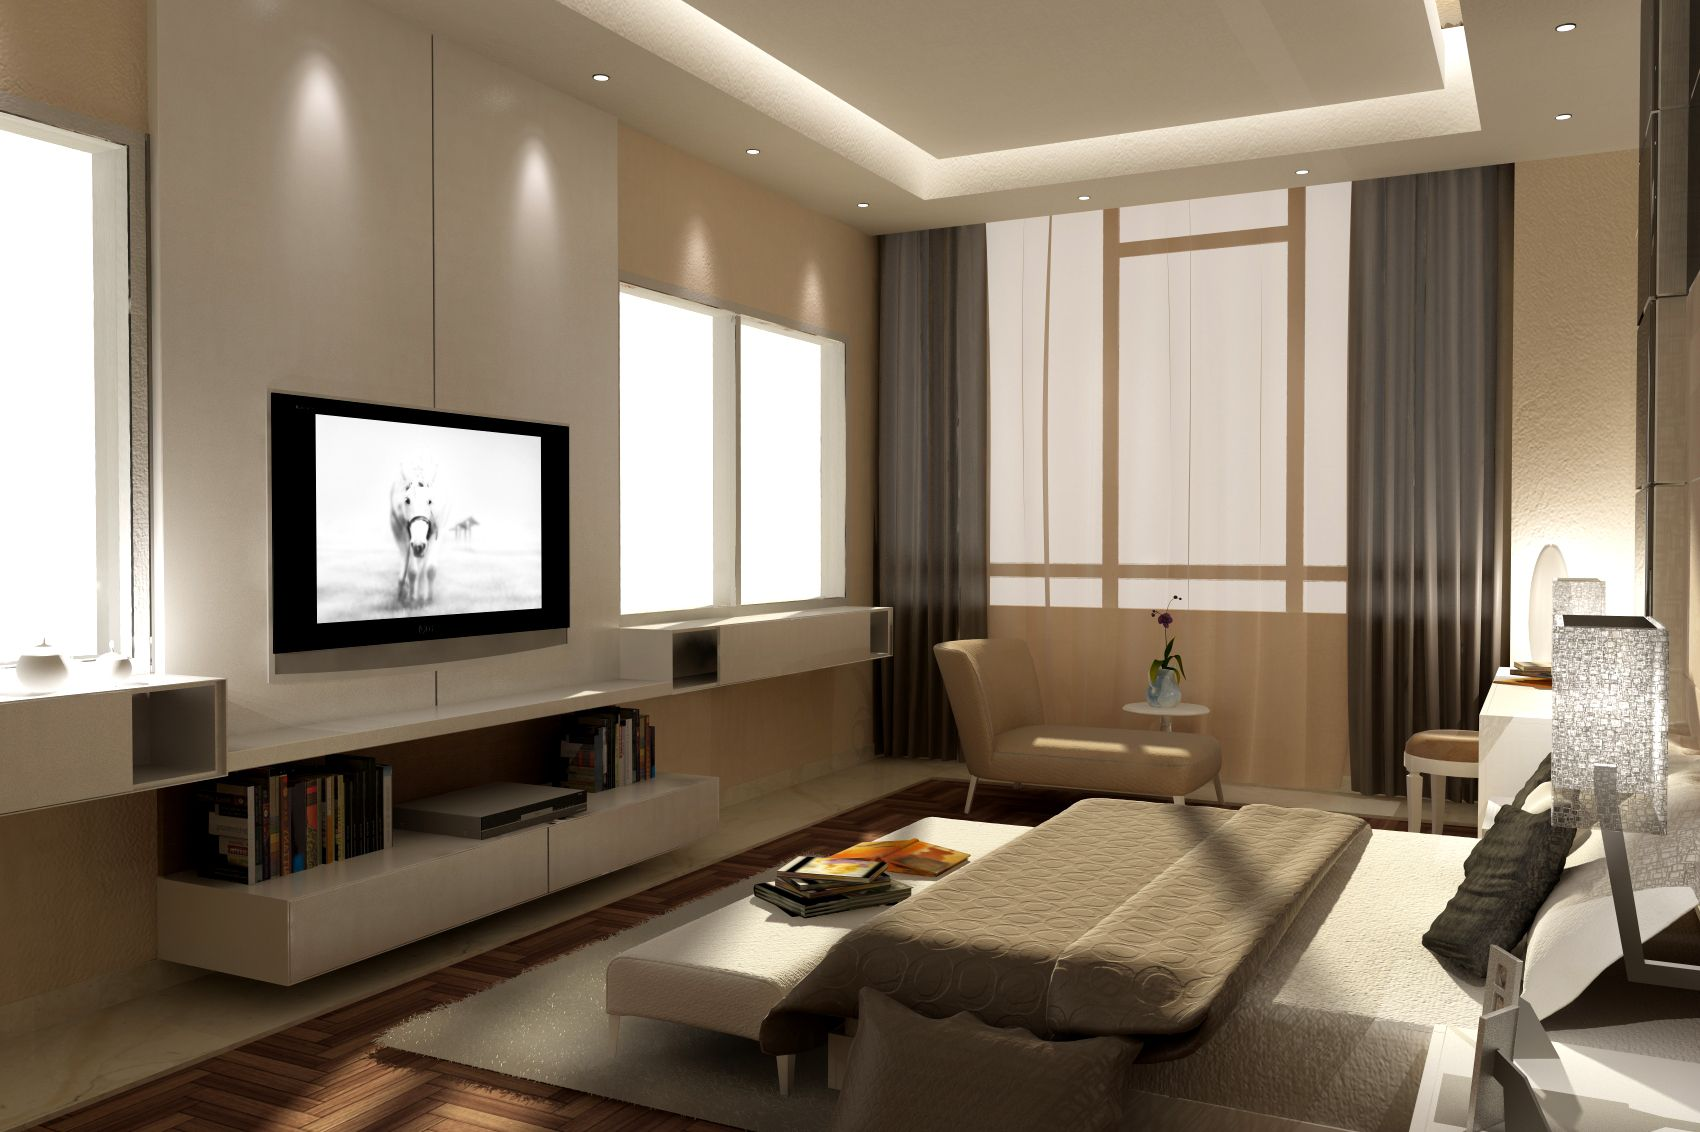 Bedroom modern bedroom interior design 3d max 3d for 3d room design mac